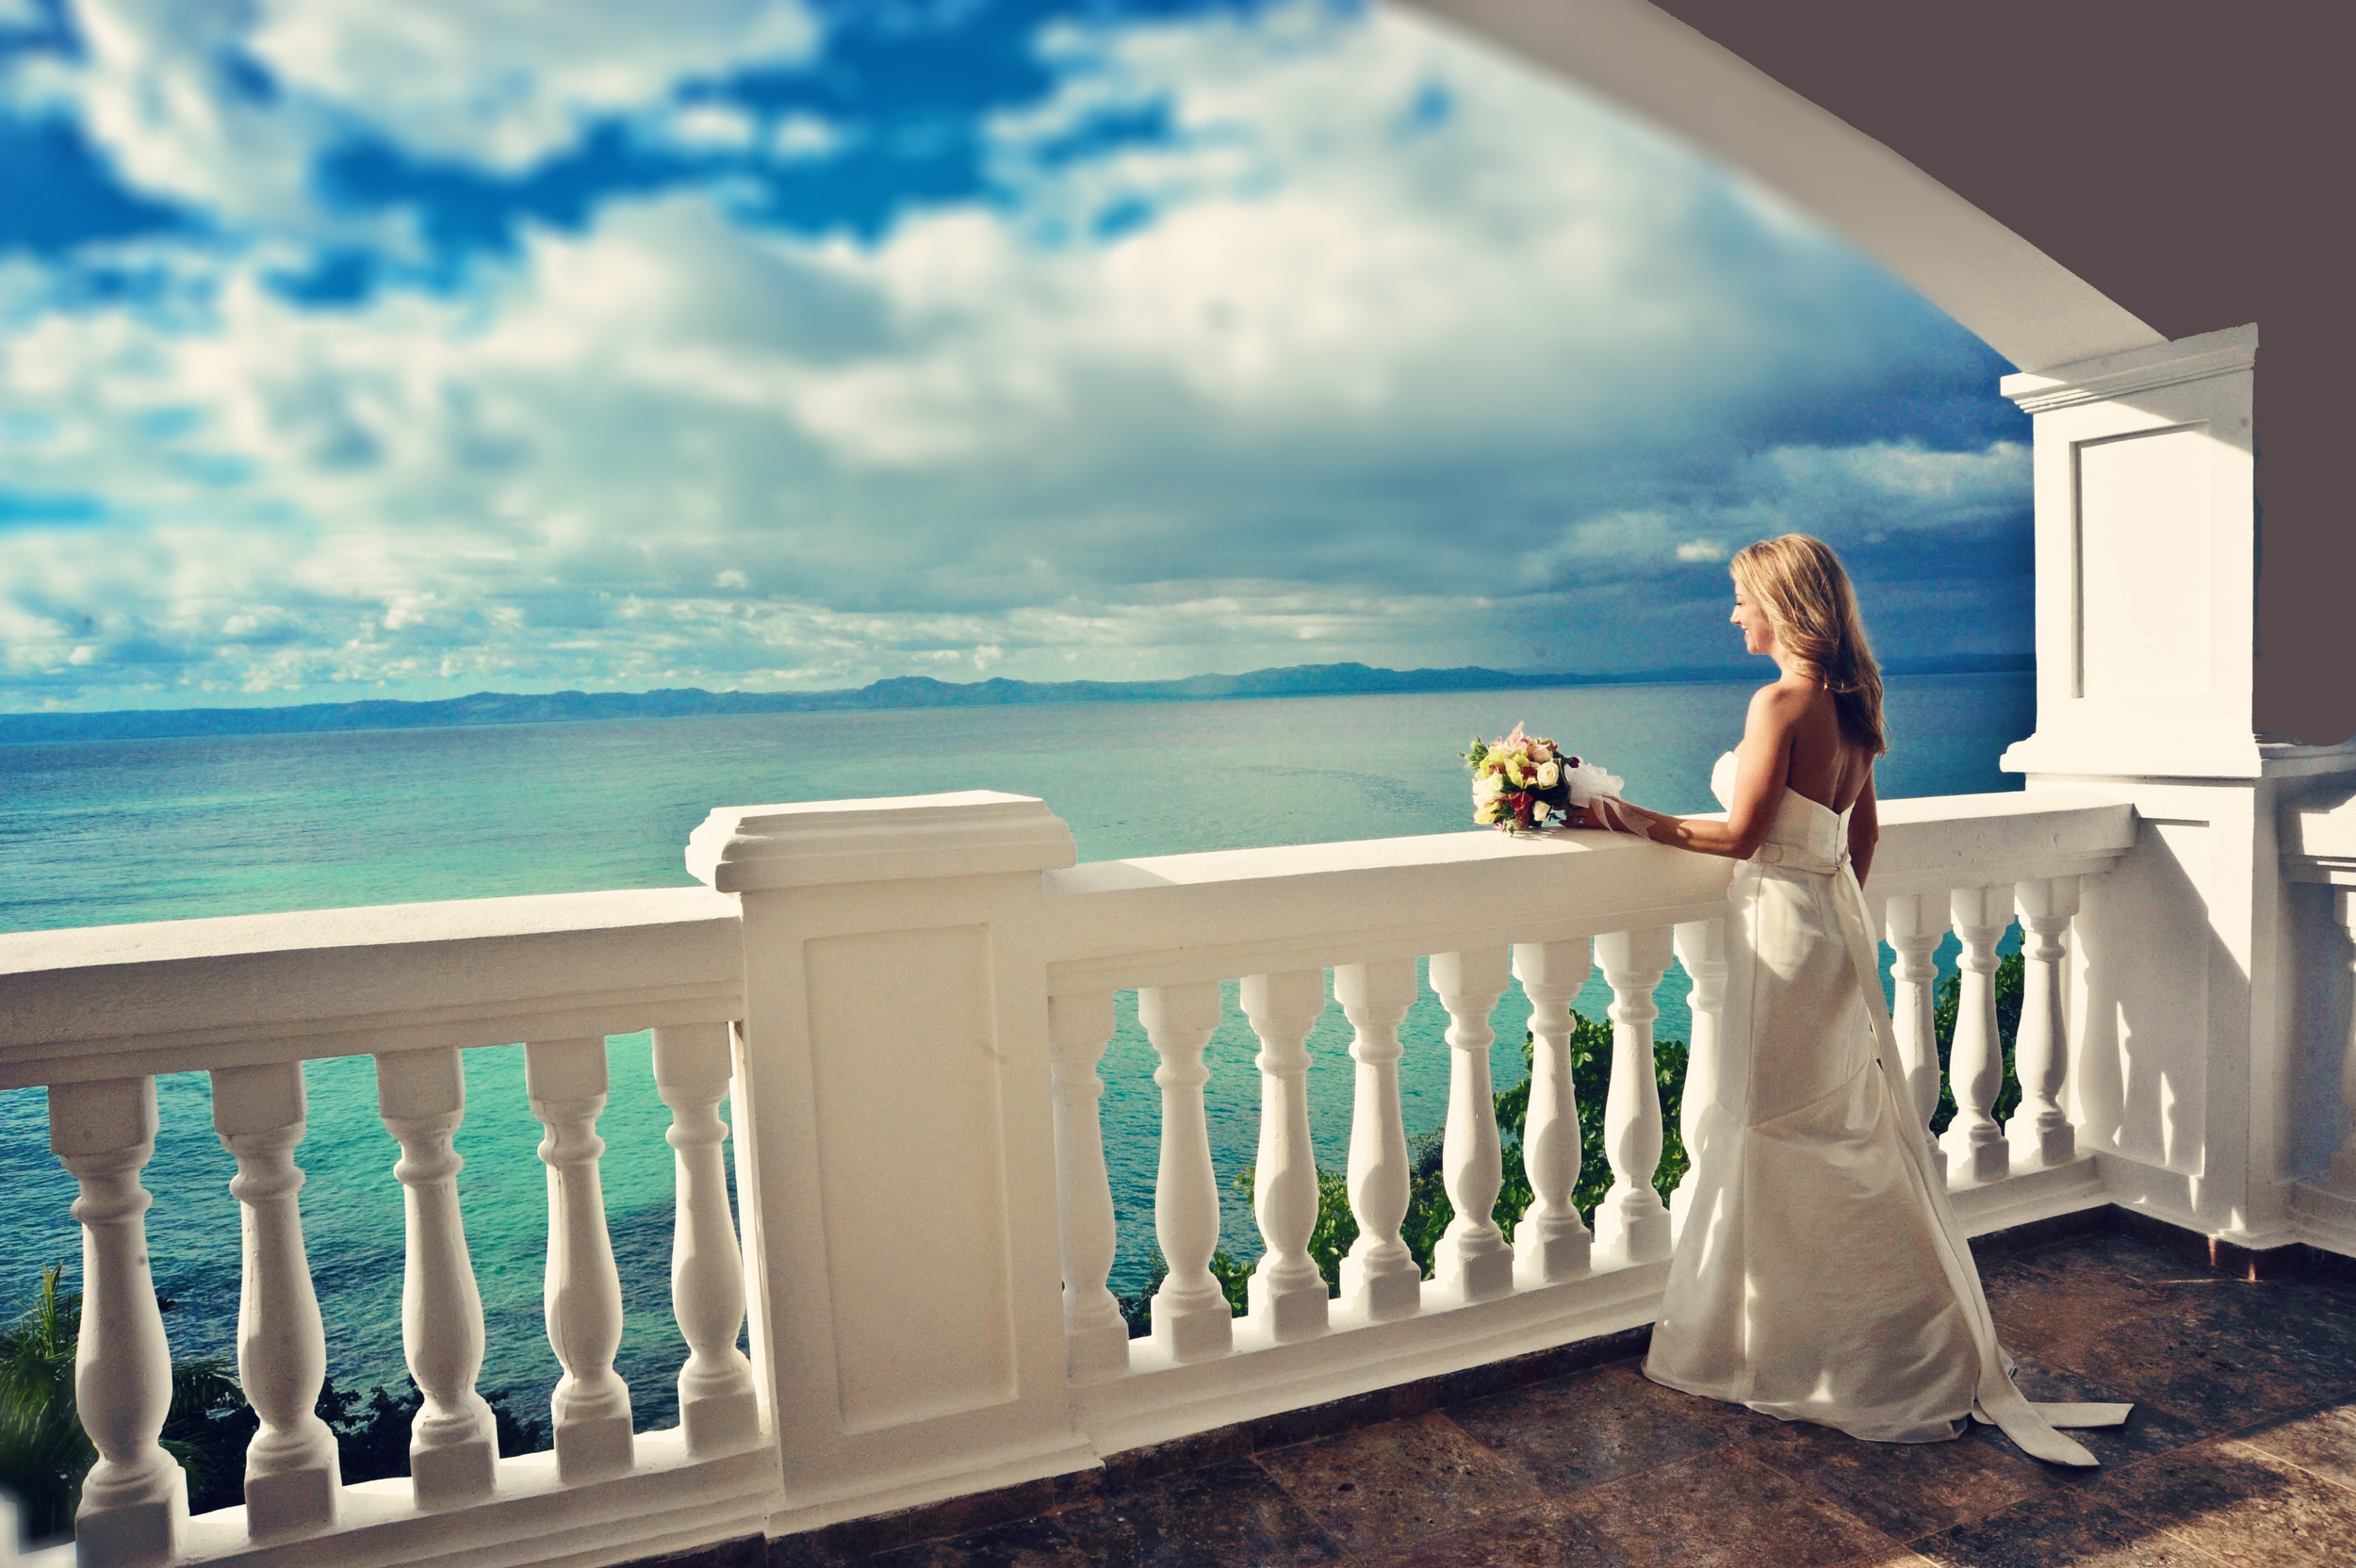 Suzanne Bridal on Balcony2.jpg